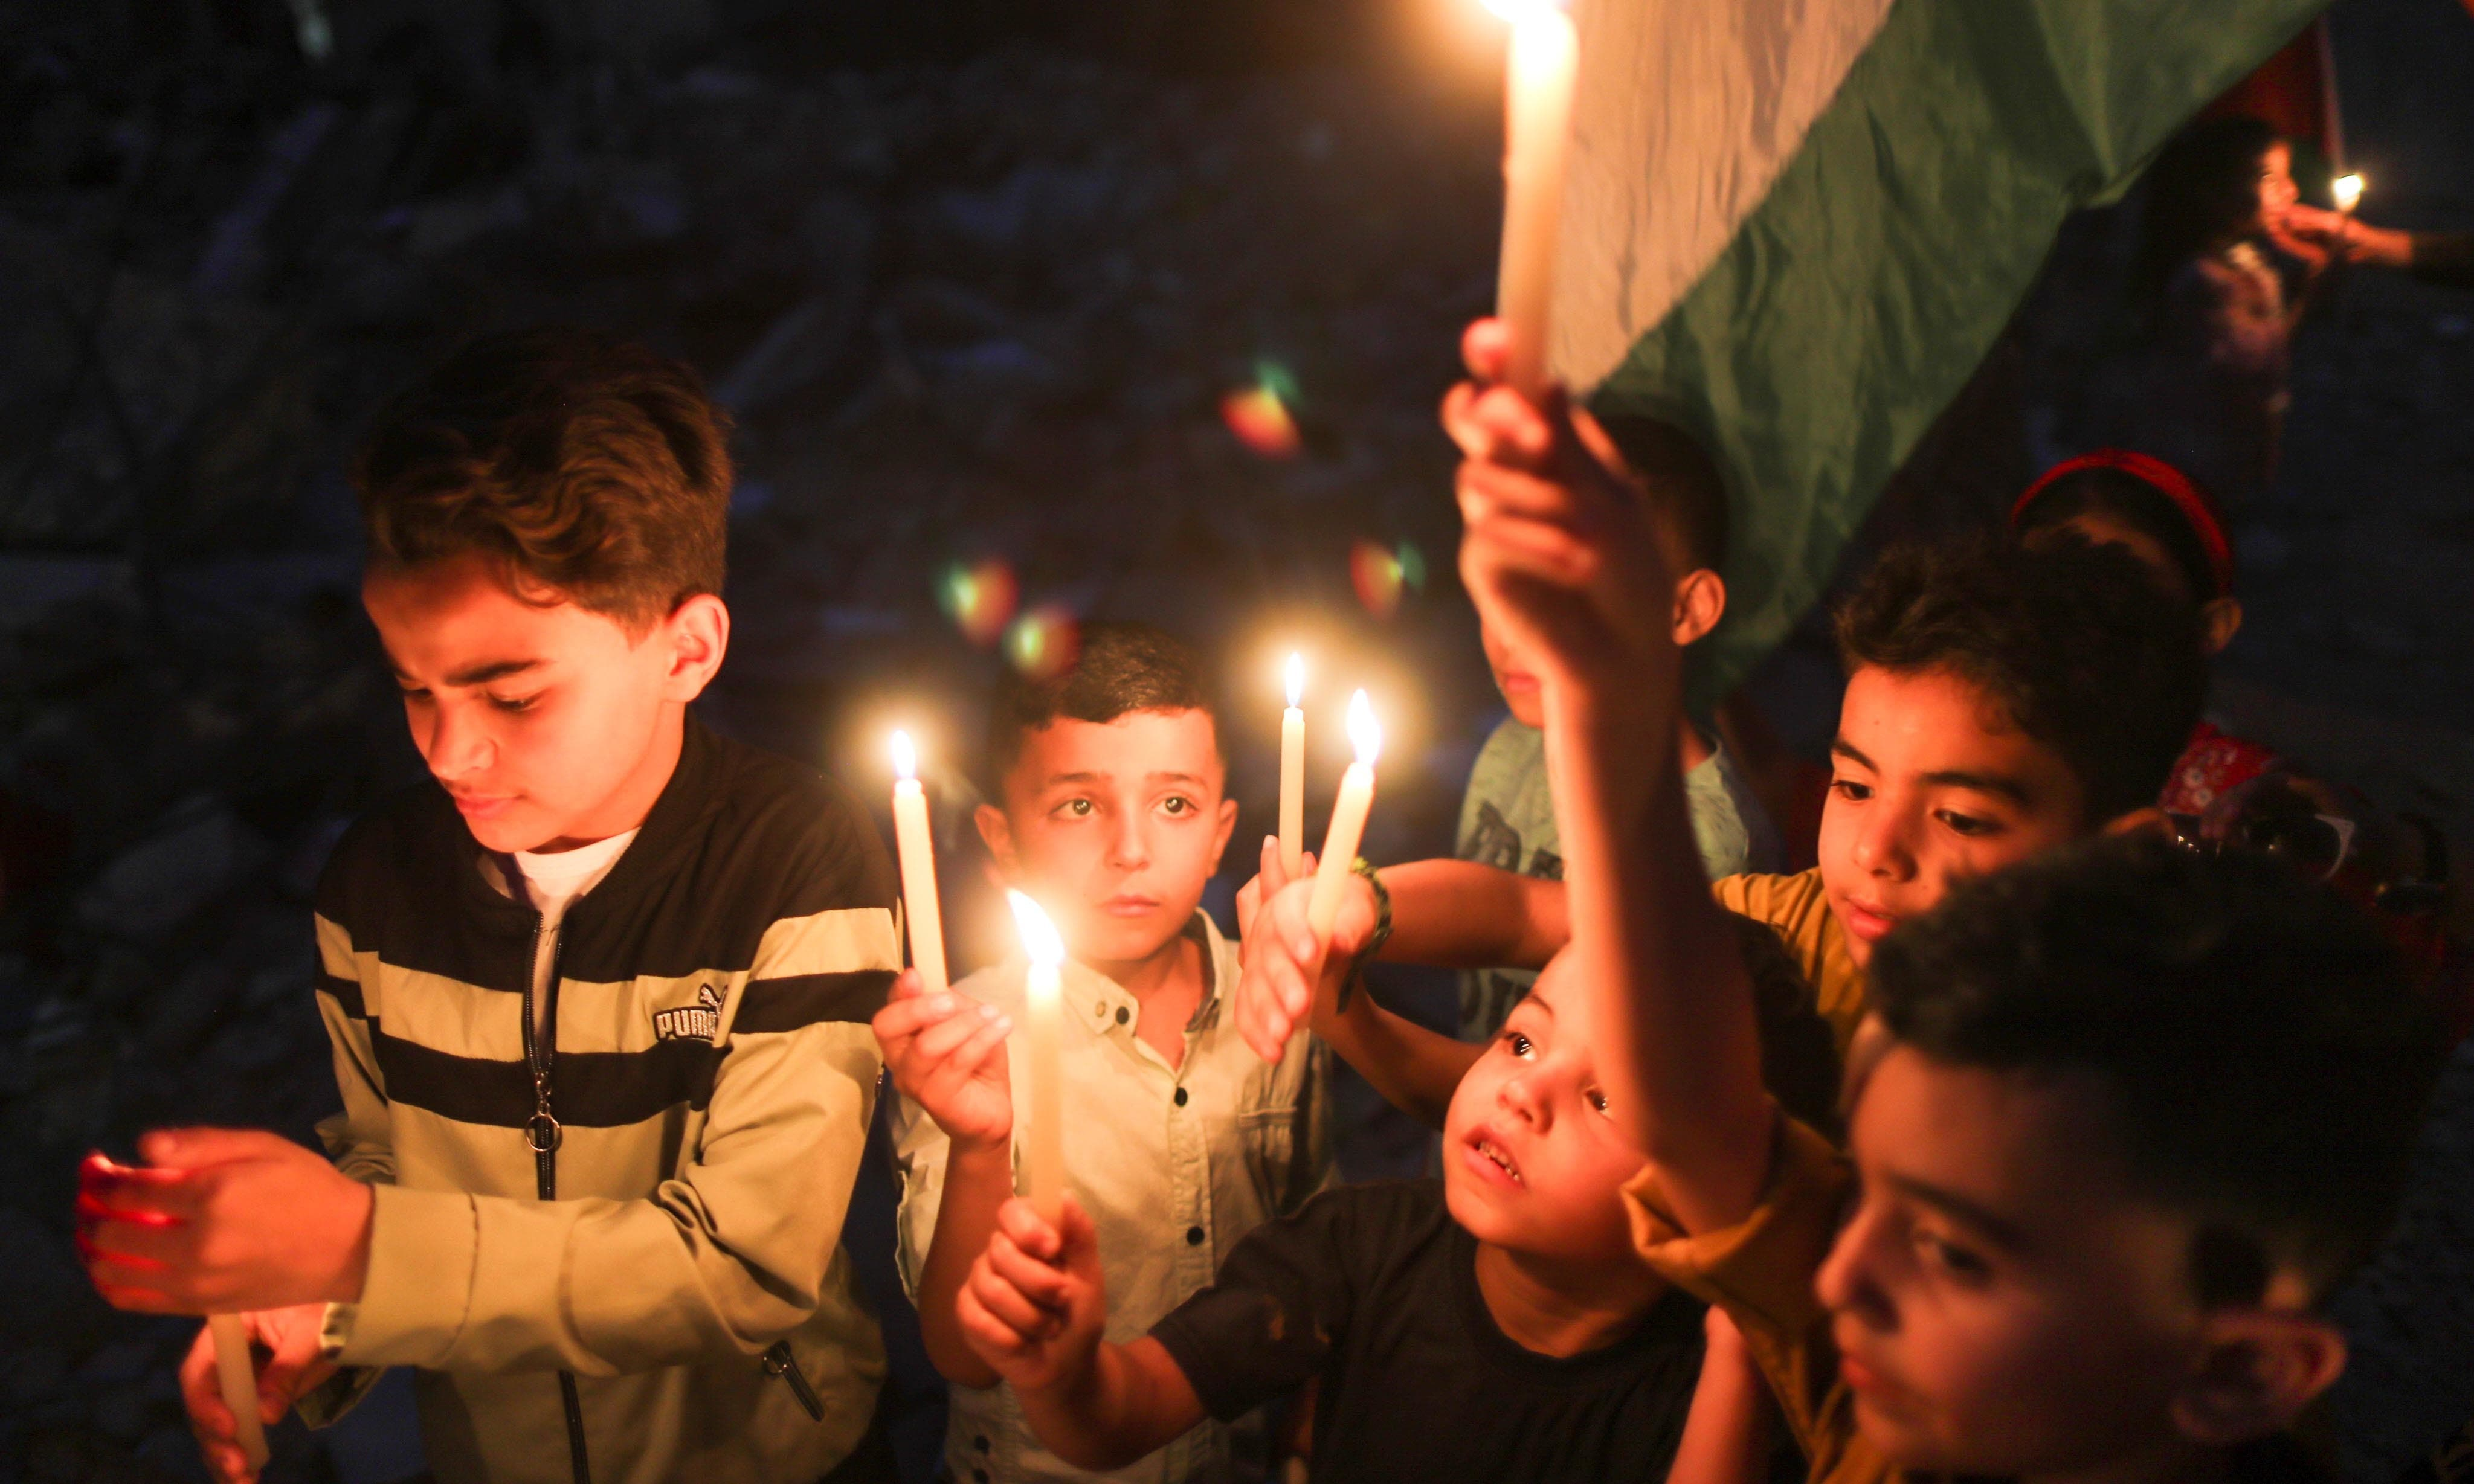 Children hold candles at the site of a house that was destroyed by Israeli air strikes, in Gaza May 23. — Reuters